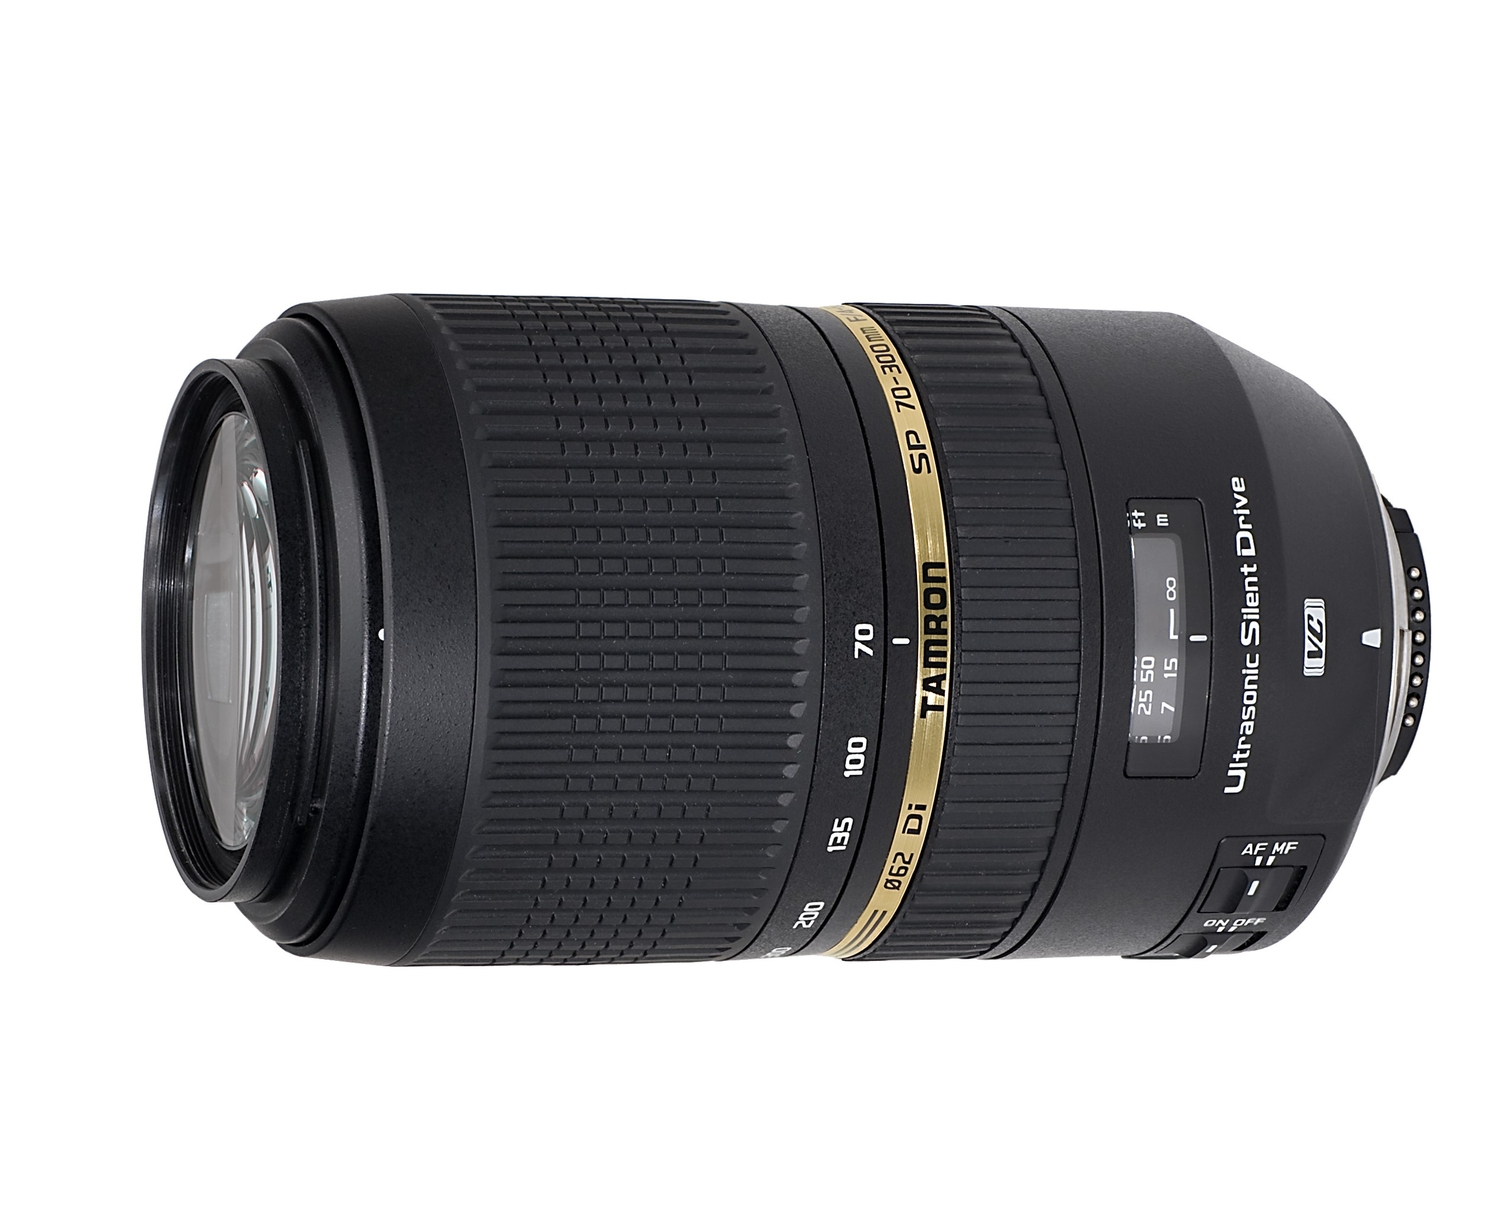 Tamron AF70-300mm f4-5.6 Di VC USD  Review: